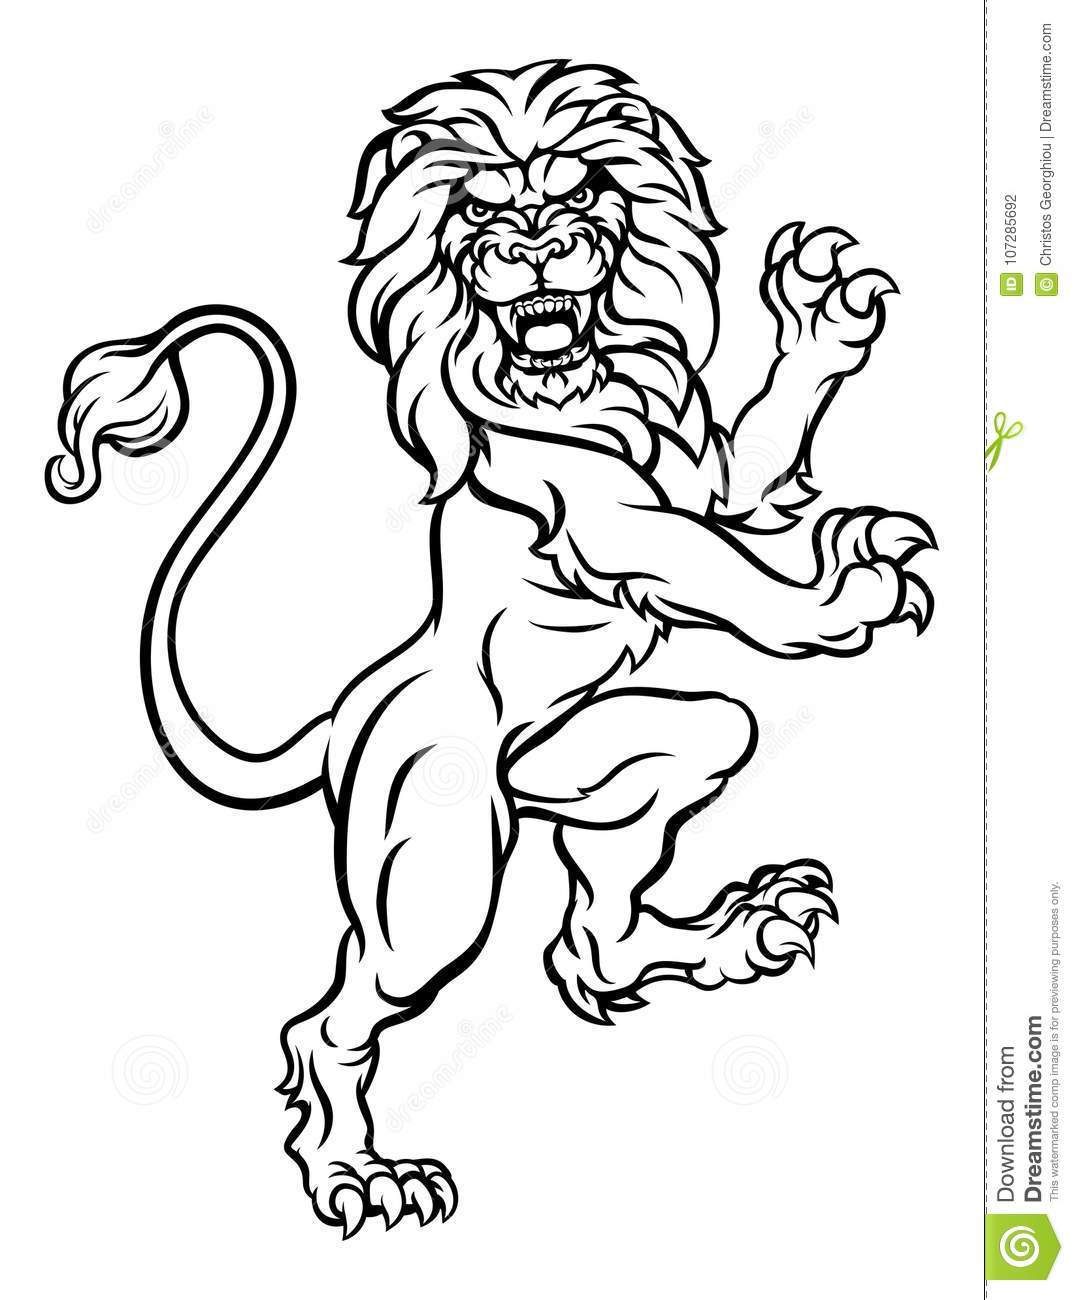 a6df03821b1ab A lion rampant standing on hind legs from a coat of arms or heraldic crest